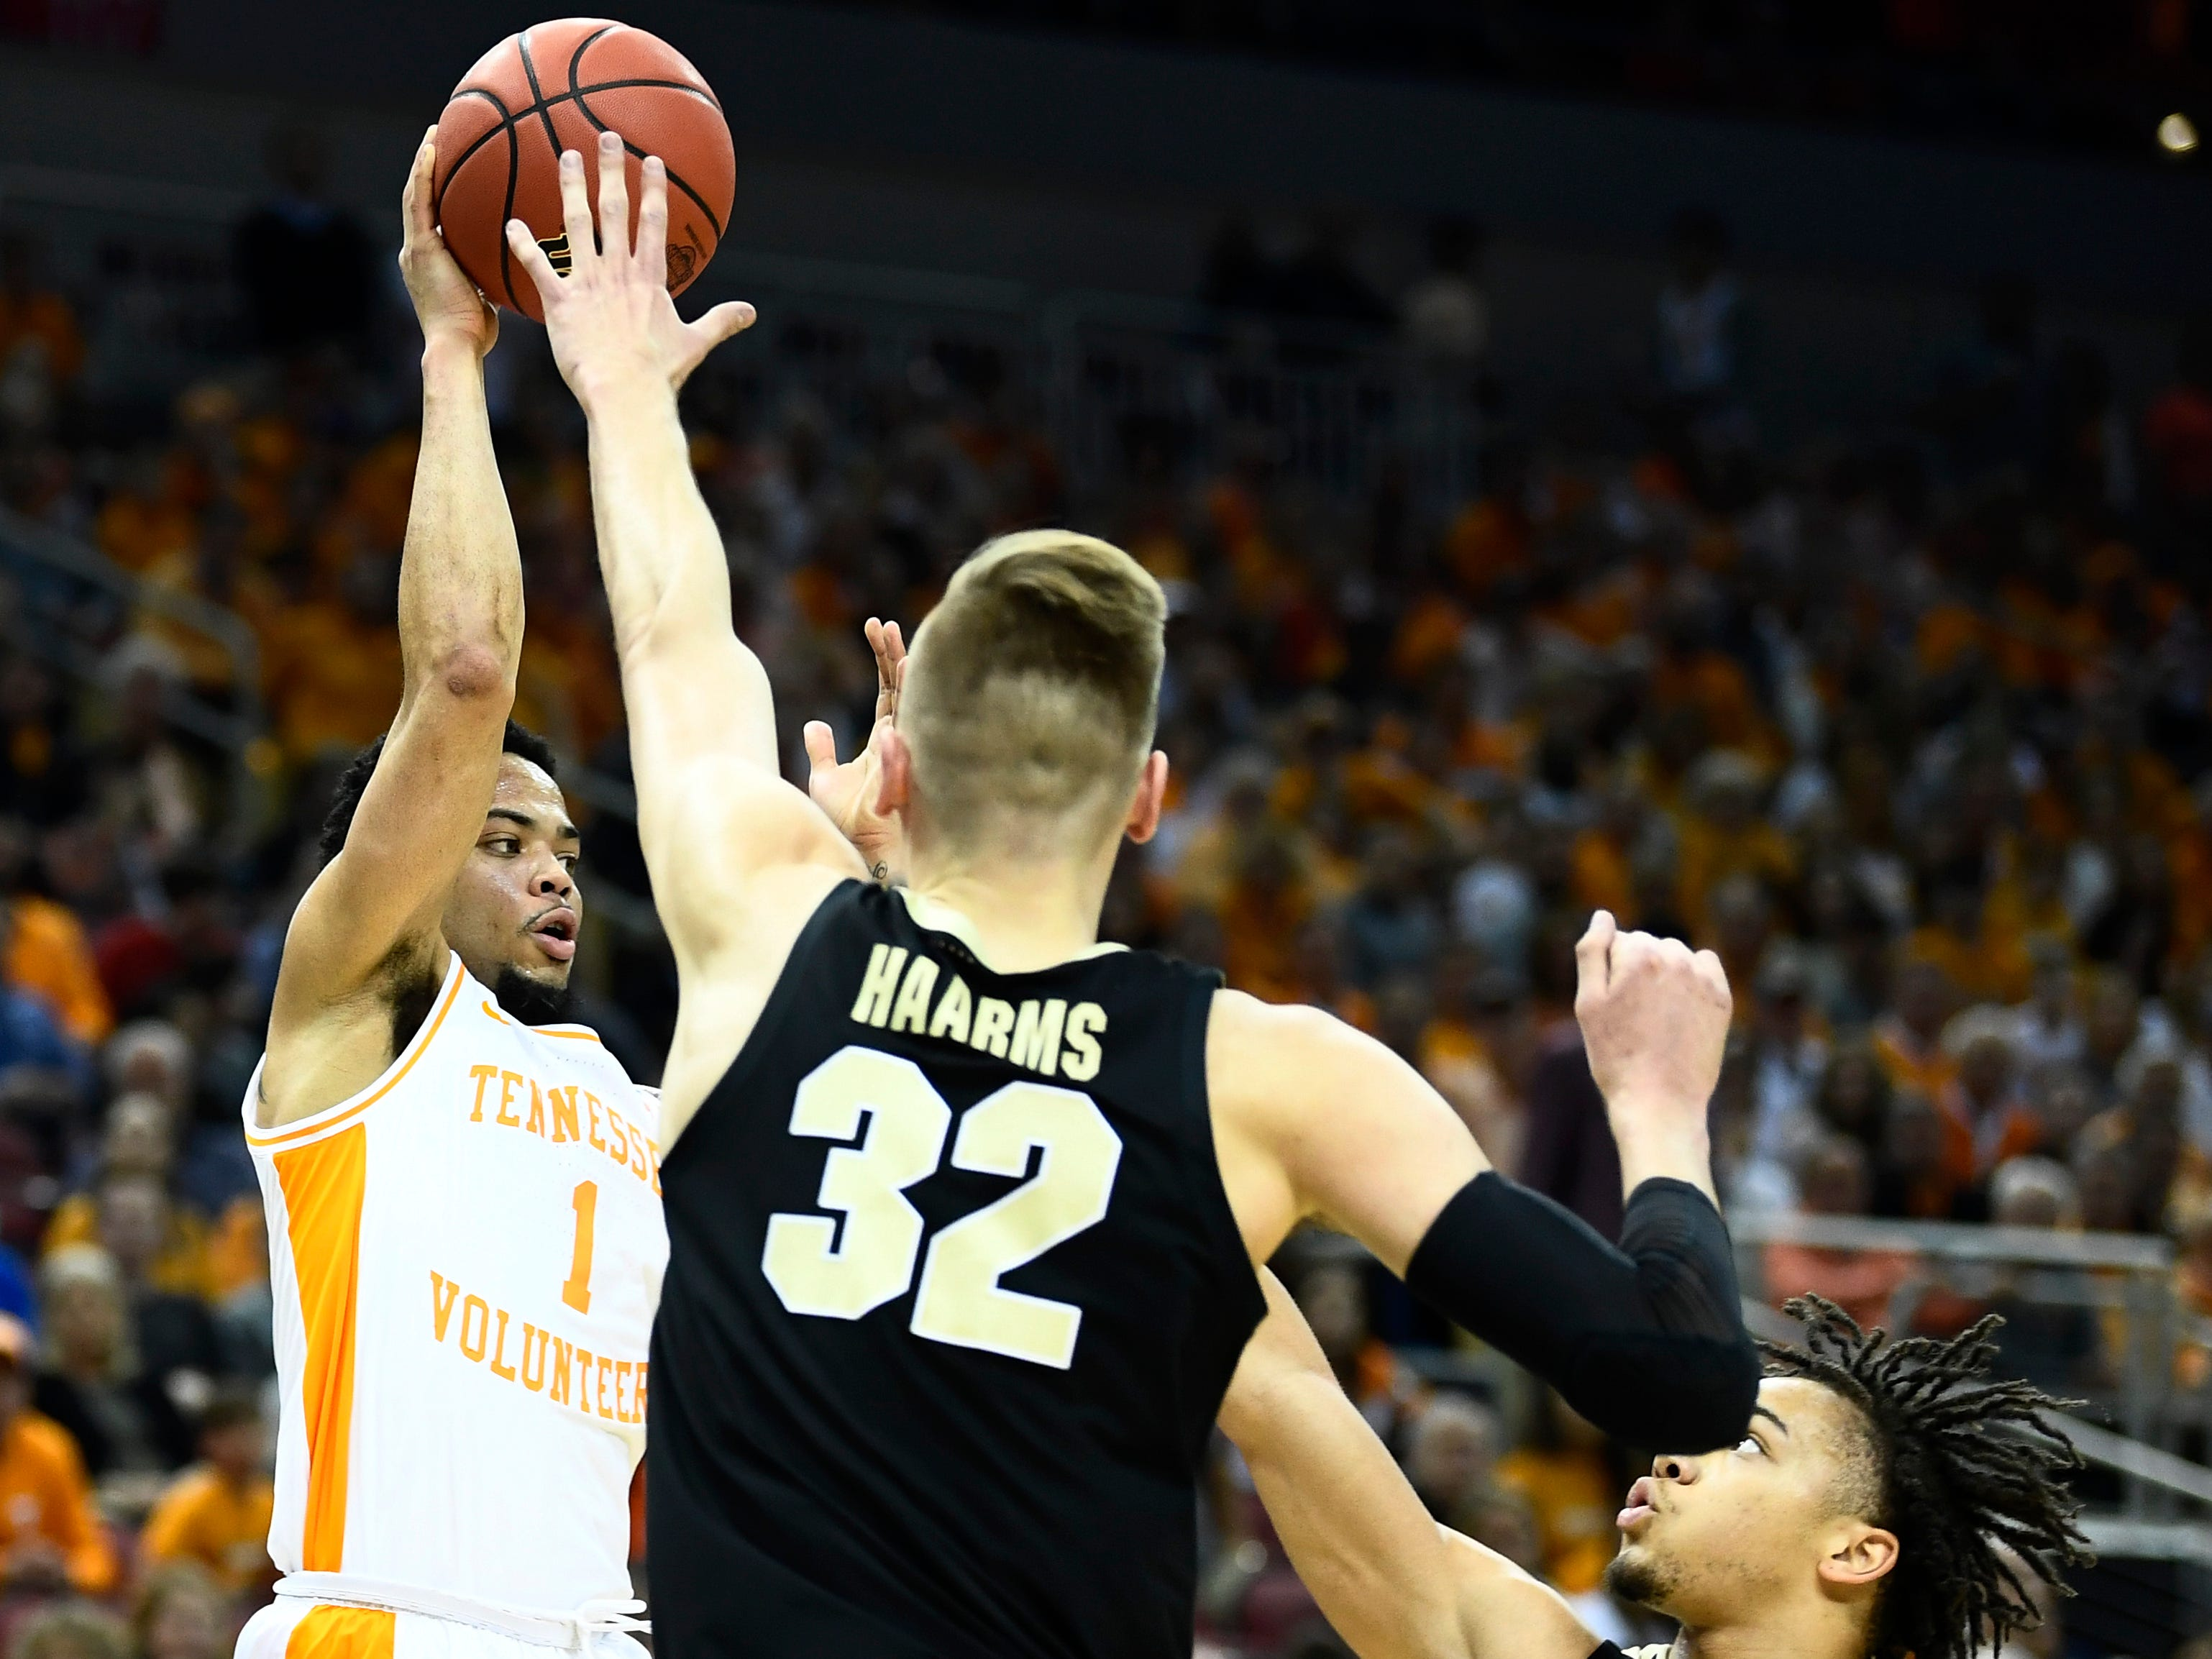 Tennessee guard Lamonte Turner (1) tries to pass defended by Purdue center Matt Haarms (32) and Purdue guard Carsen Edwards (3) during the first half of their Sweet 16 game in the NCAA Tournament Thursday, March 28, 2019, at the KFC Yum! Center in Louisville, Ky.